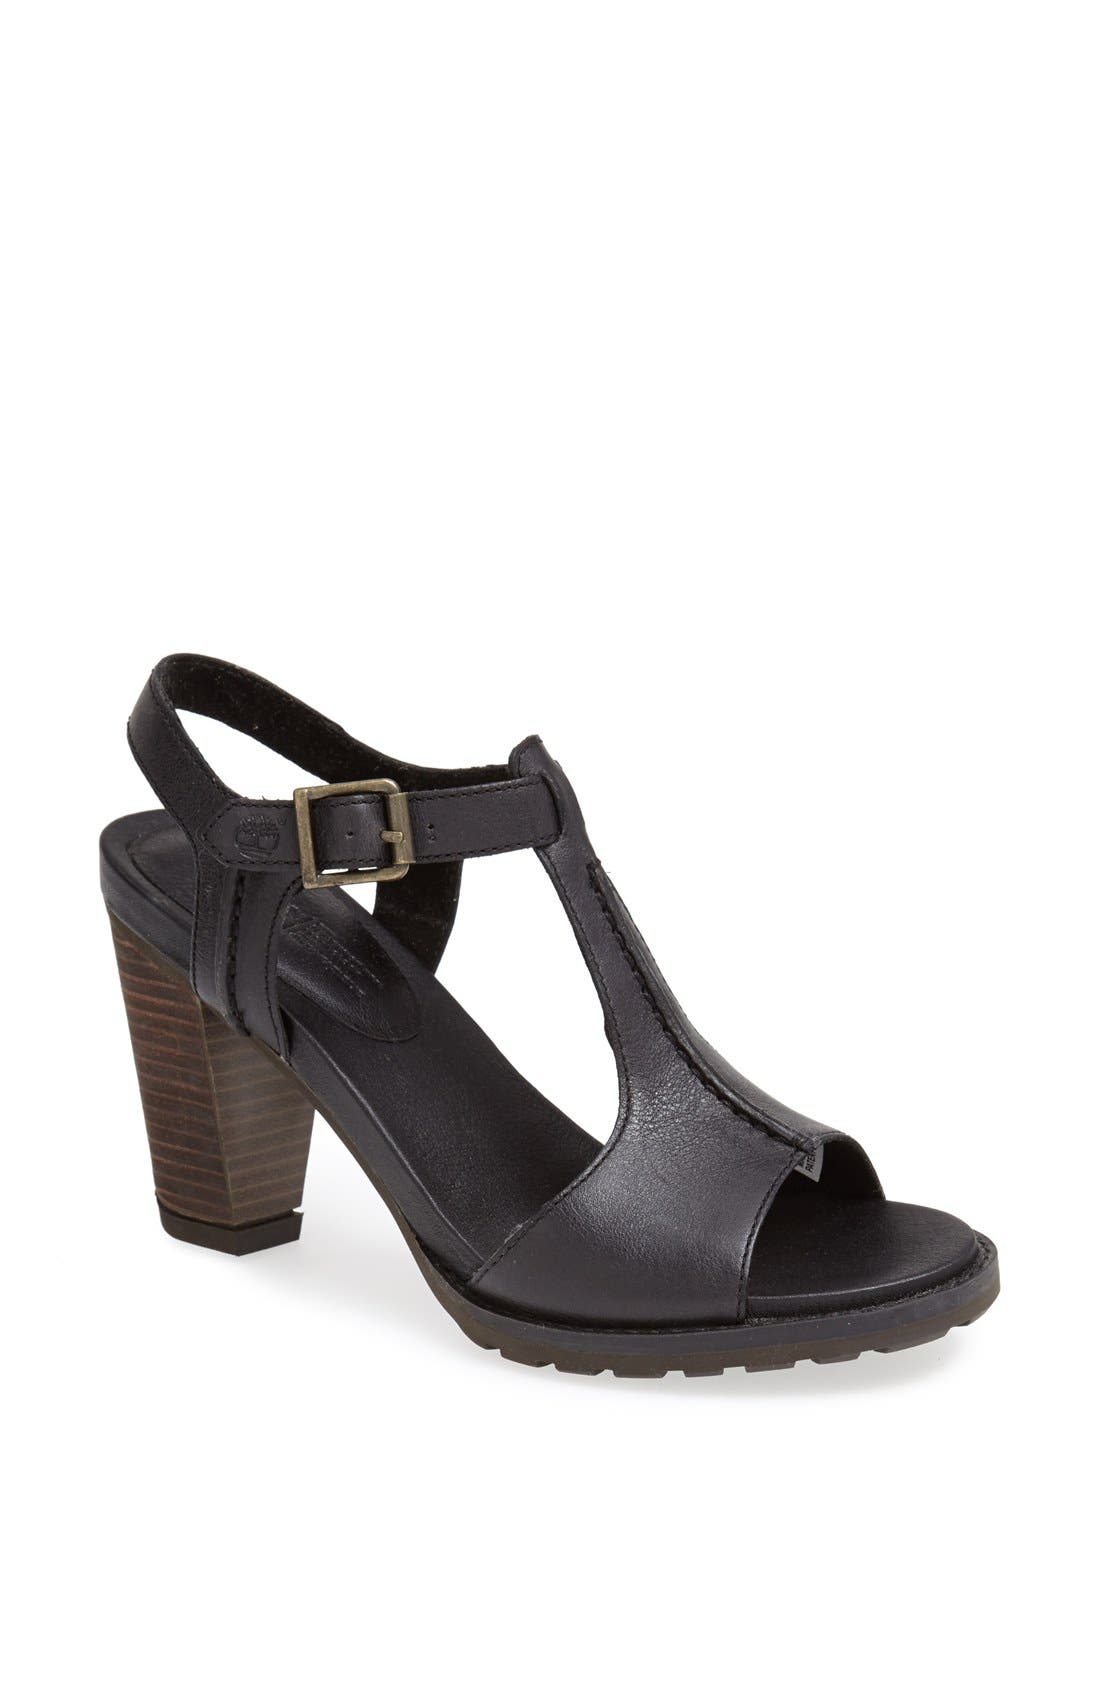 Earthkeepers<sup>®</sup> 'Stratham Heights' Sandal, Main, color, 001